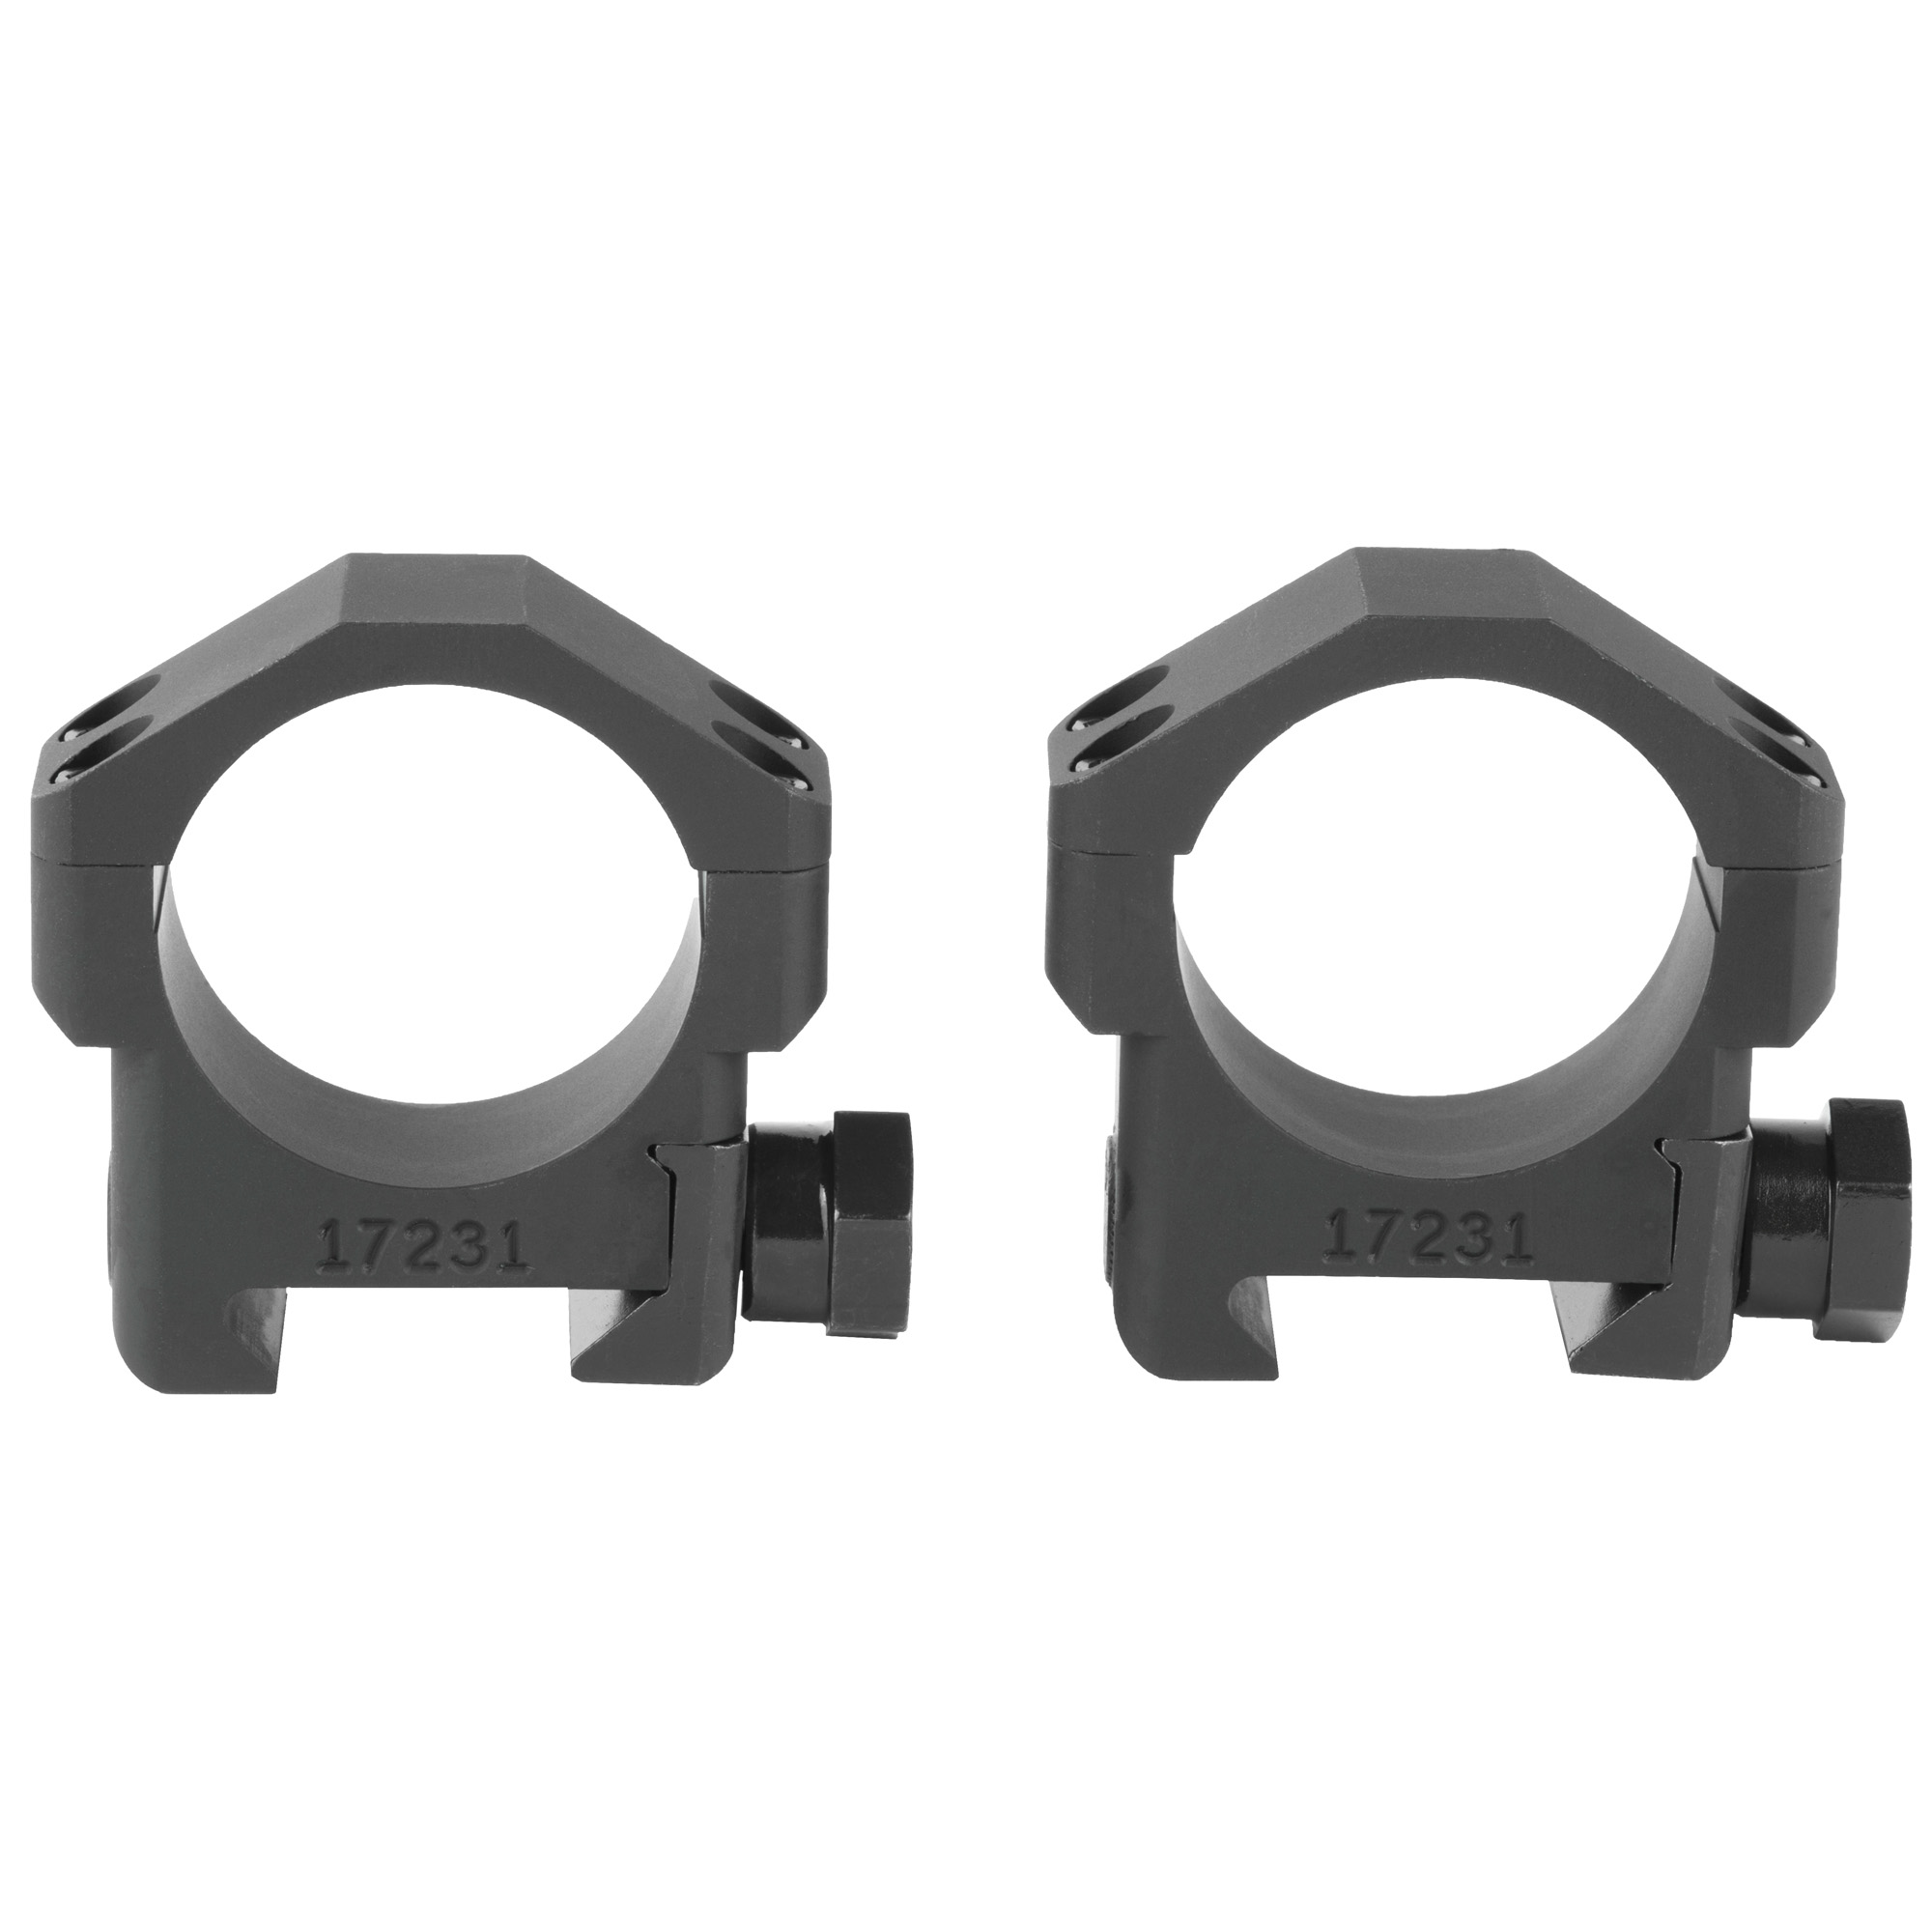 The Badger Ordnance 30mm Standard Scope Rings are optimized for use with current 30mm optics and accommodate precision rifles with mid-weight barrel profiles. They are machined from 6061 Alloy and Mil Spec Type III Hardcoat Anodized.